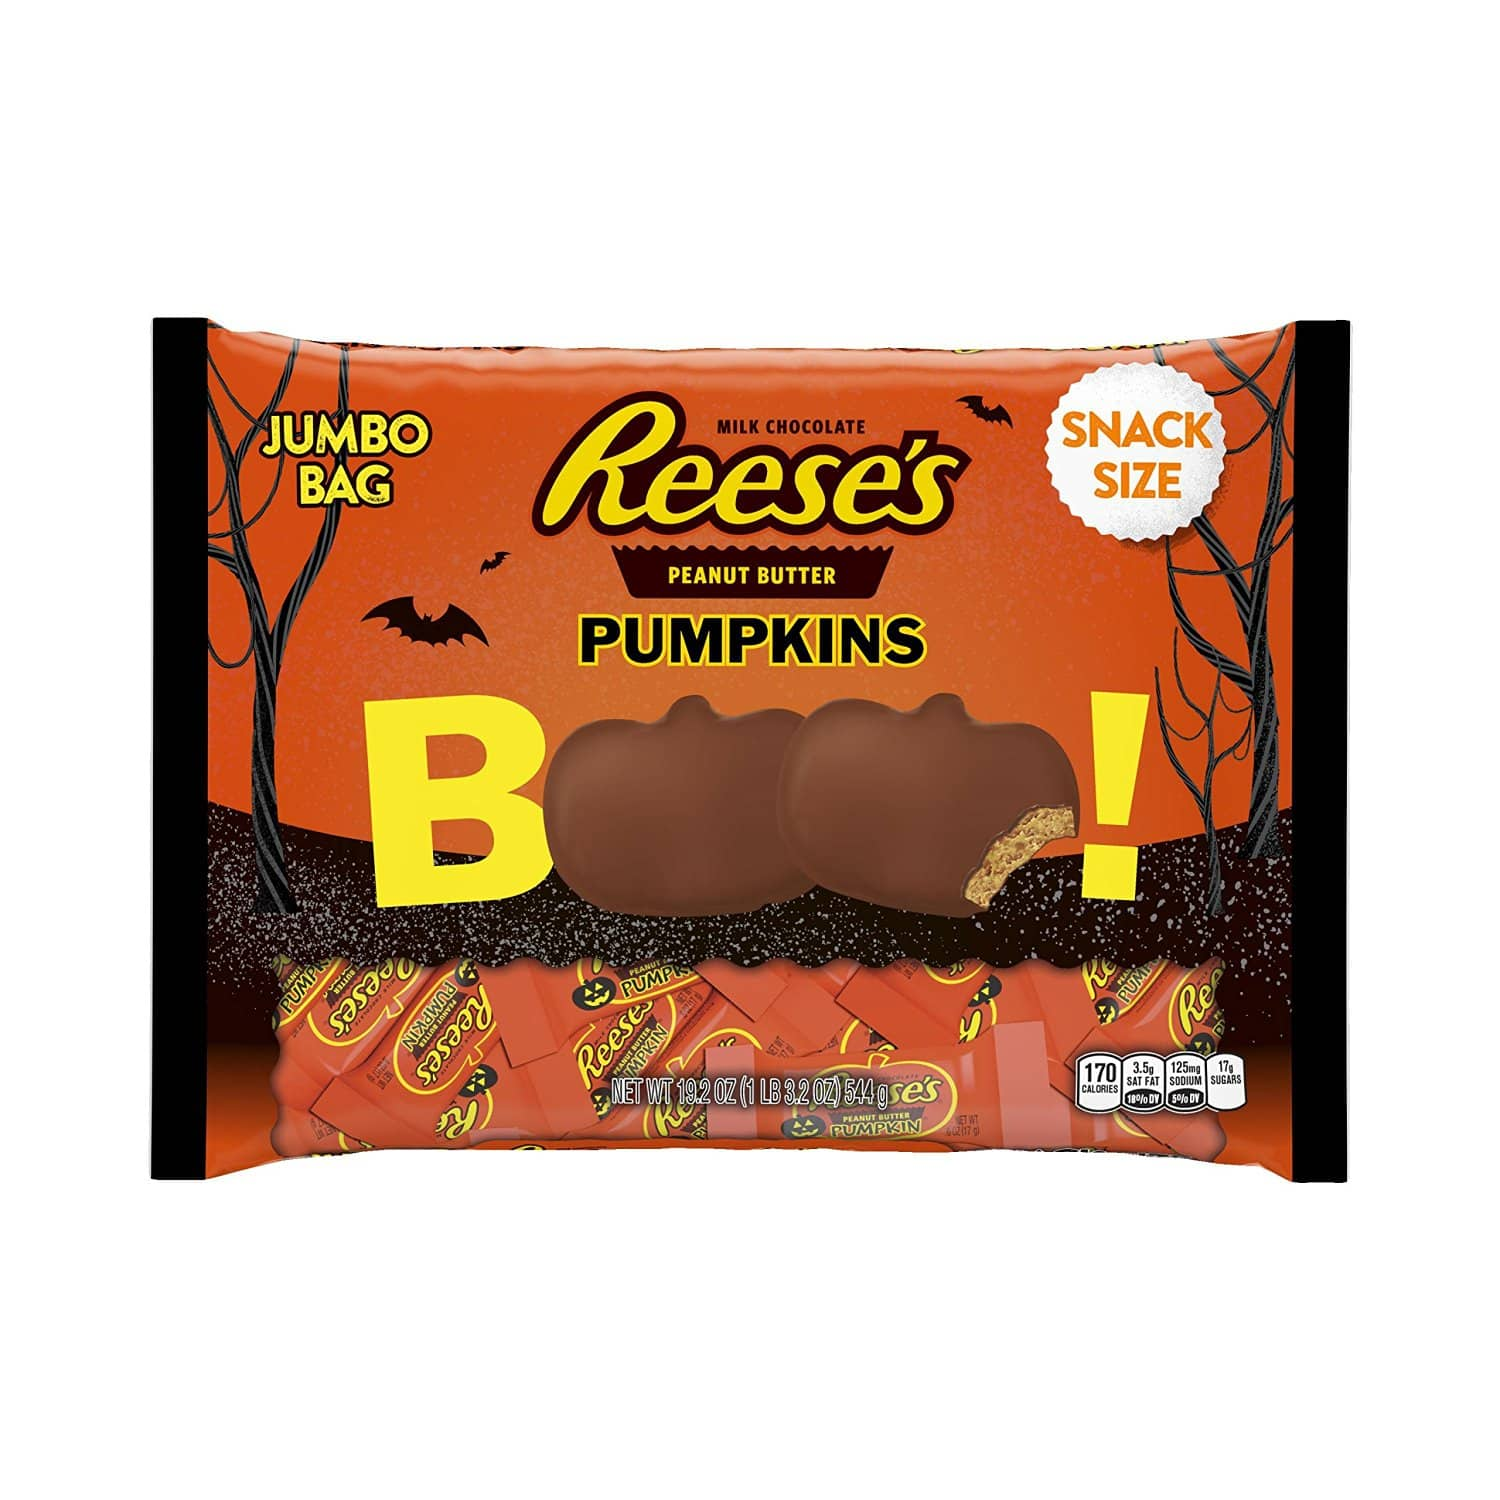 Hershey's Halloween Candy: 50-pc Reese's Snack Size Peanut Butter Pumpkins  $8 & More